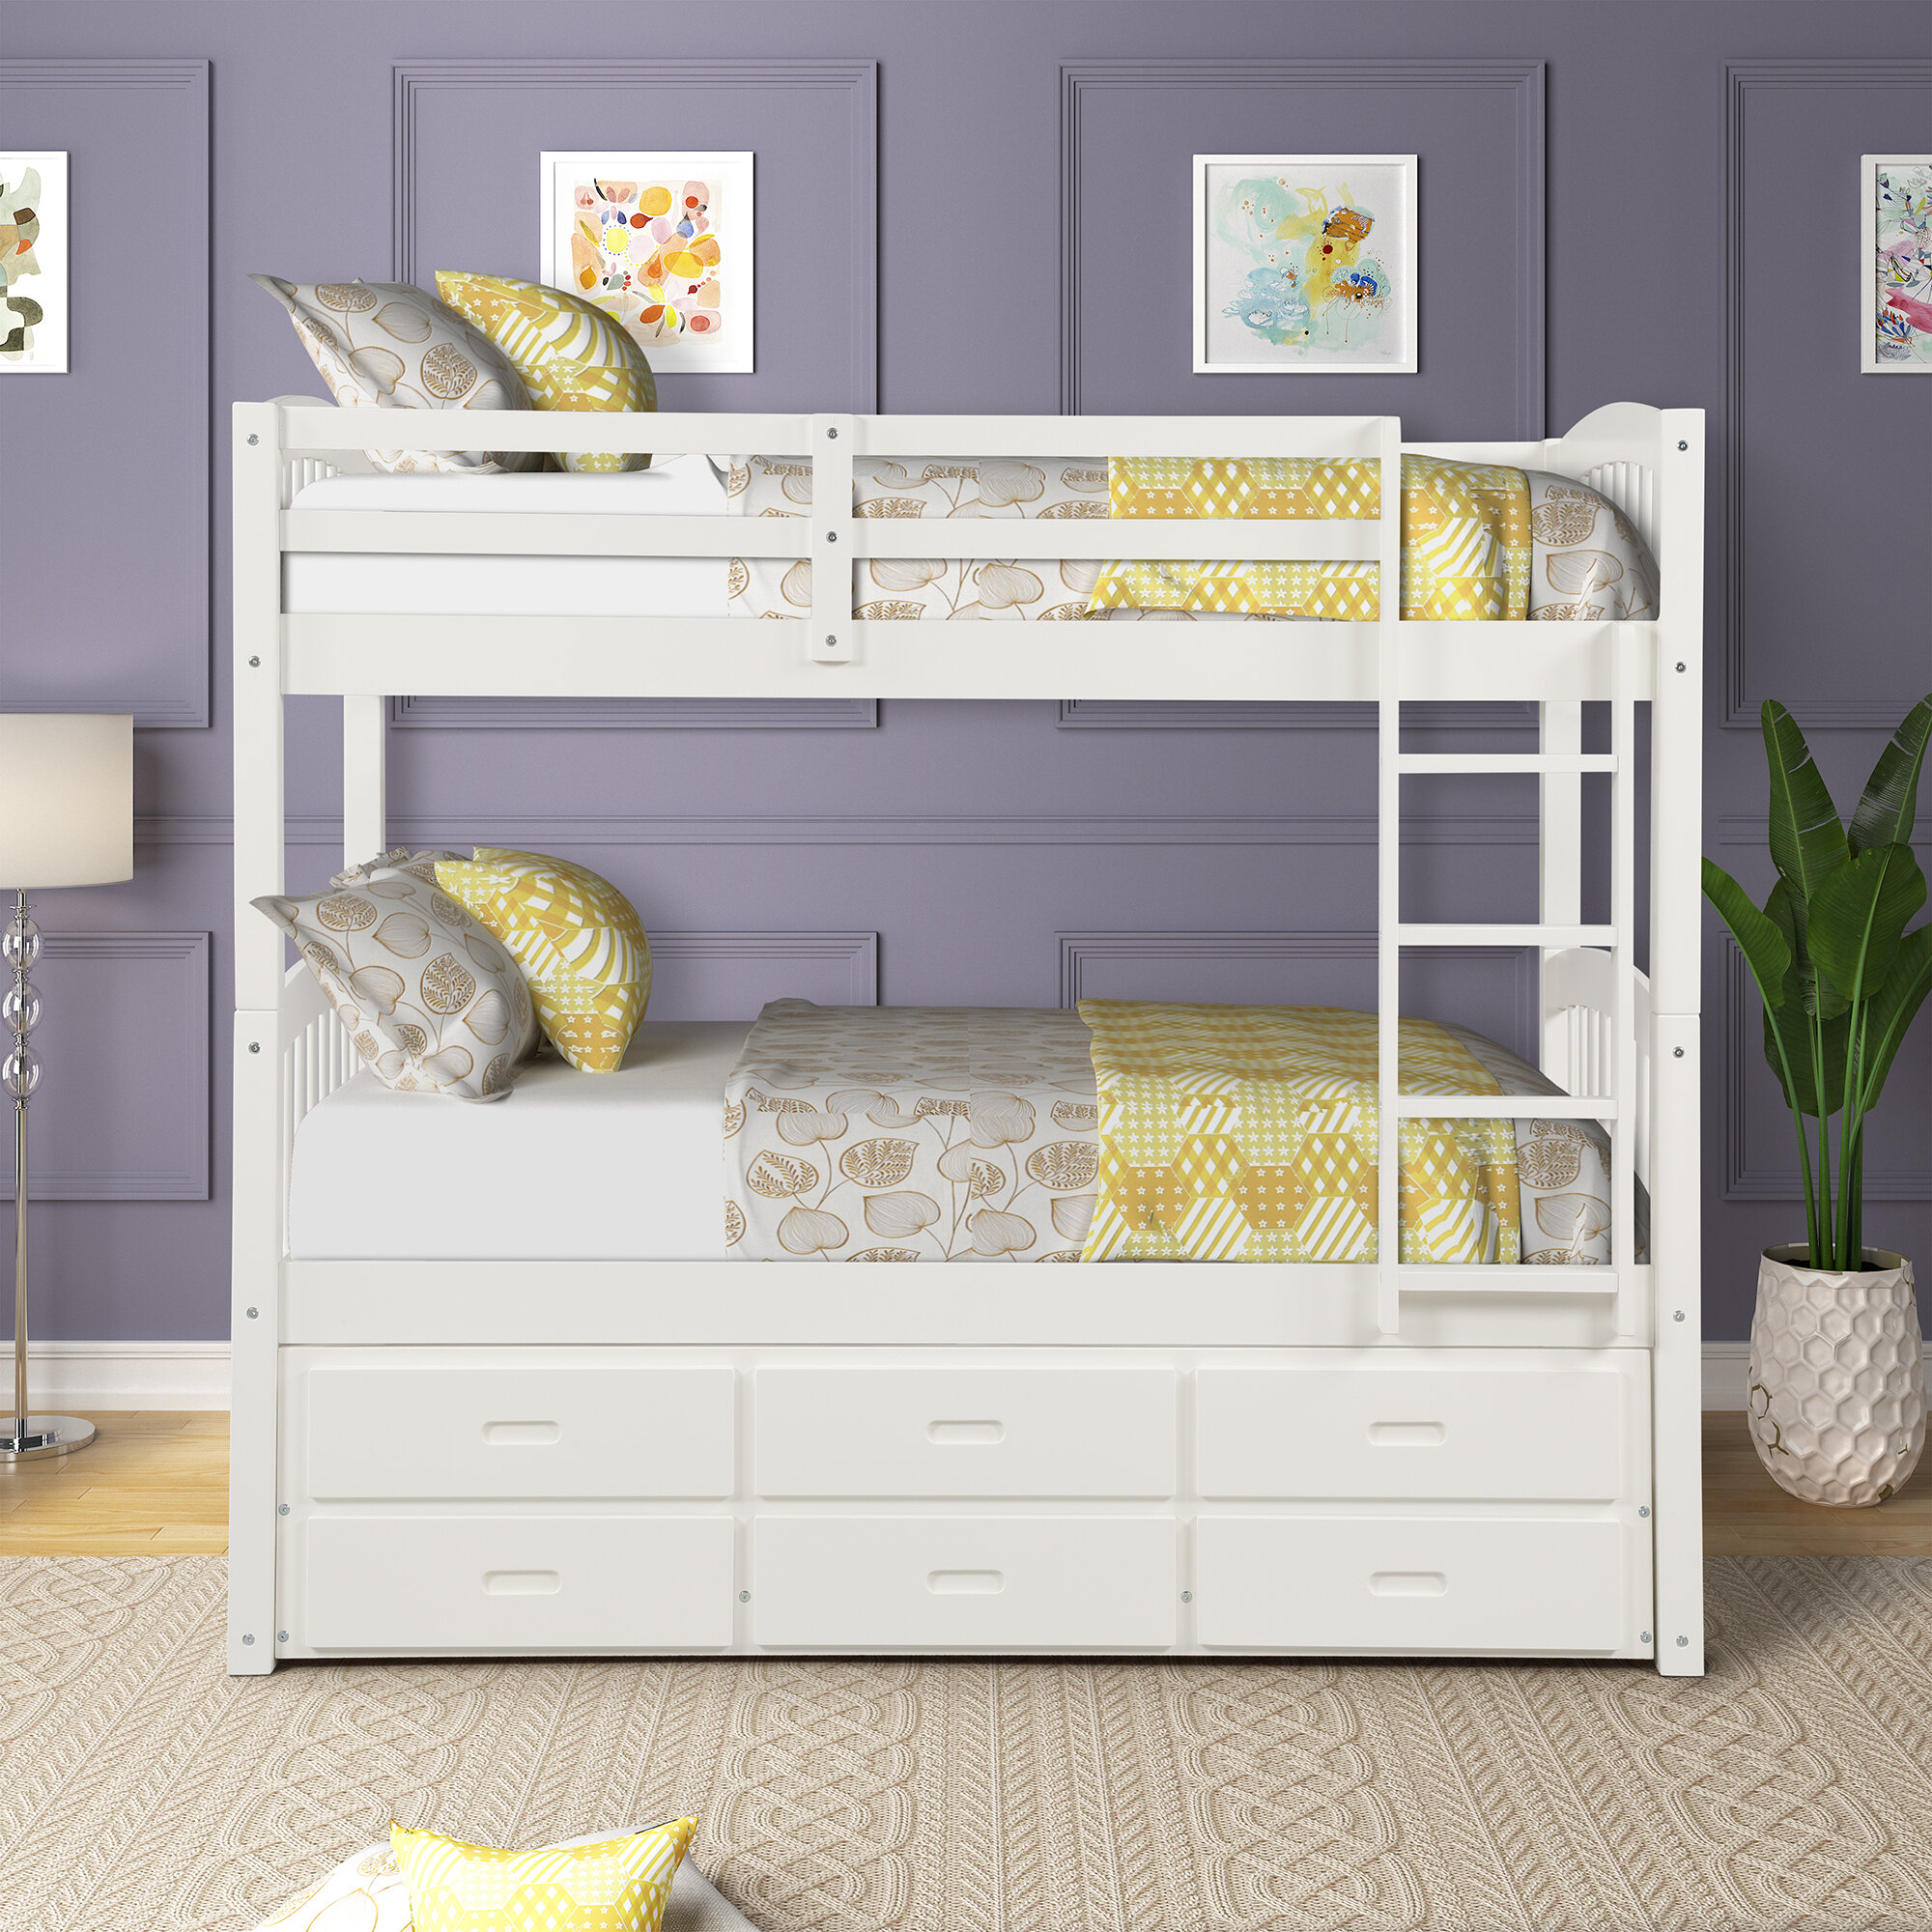 Harriet Bee Bovary Extra Long Twin Over Extra Long Twin Bunk Bed